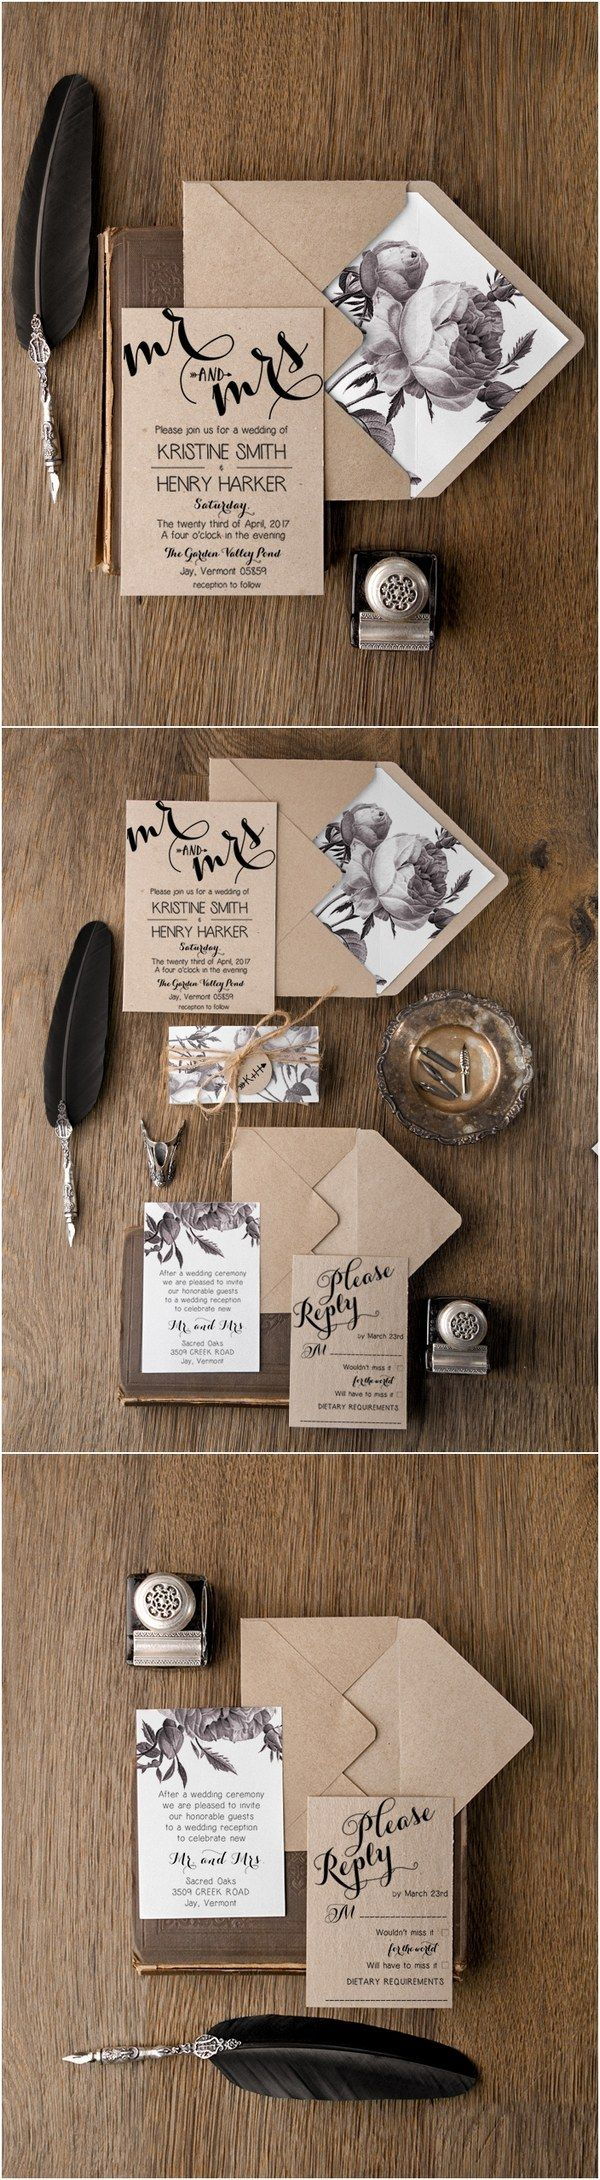 invitation letter for us vissample wedding%0A Follow us  SIGNATUREBRIDE on Twitter and on FACEBOOK   SIGNATURE BRIDE  MAGAZINE    Cool Wedding InvitationsWedding Invitation